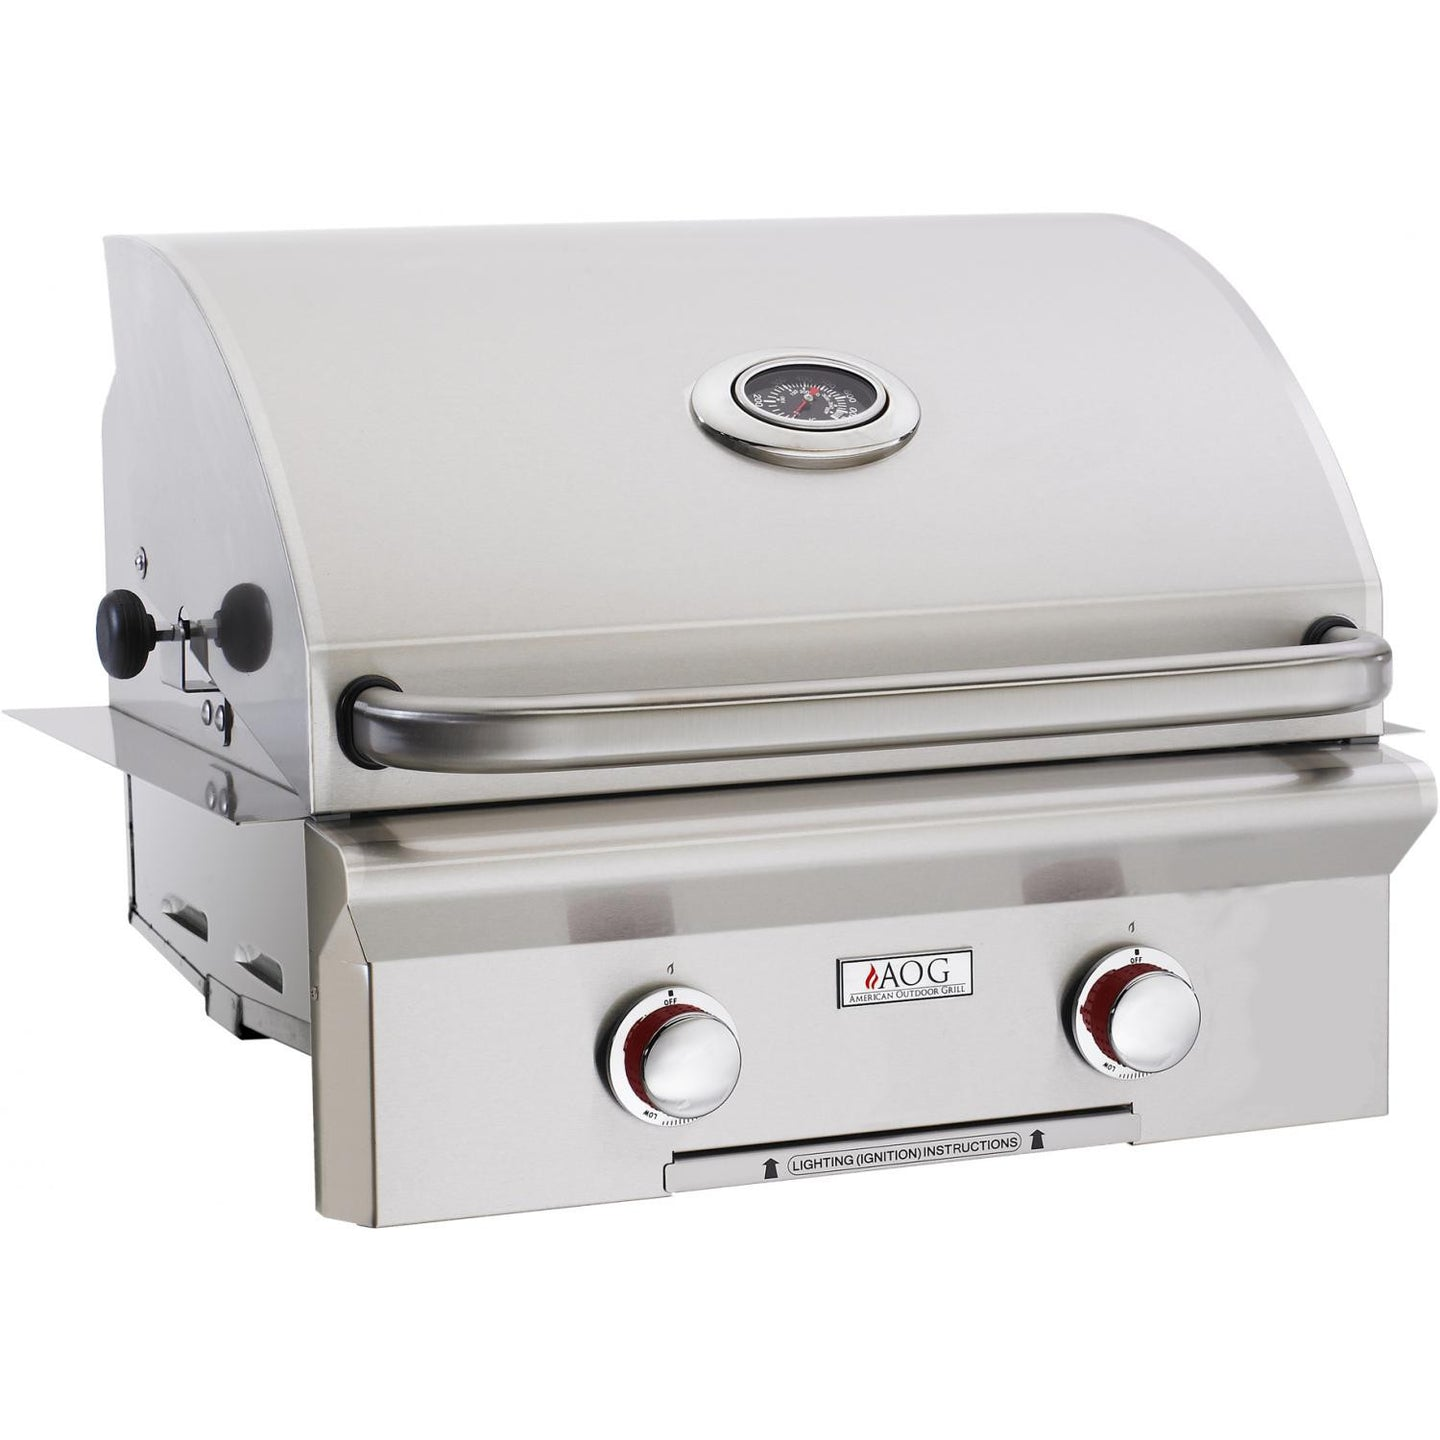 American Outdoor Grill T-Series 24-Inch 2-Burner Built-In Gas Grill - 24PBT-OOSP